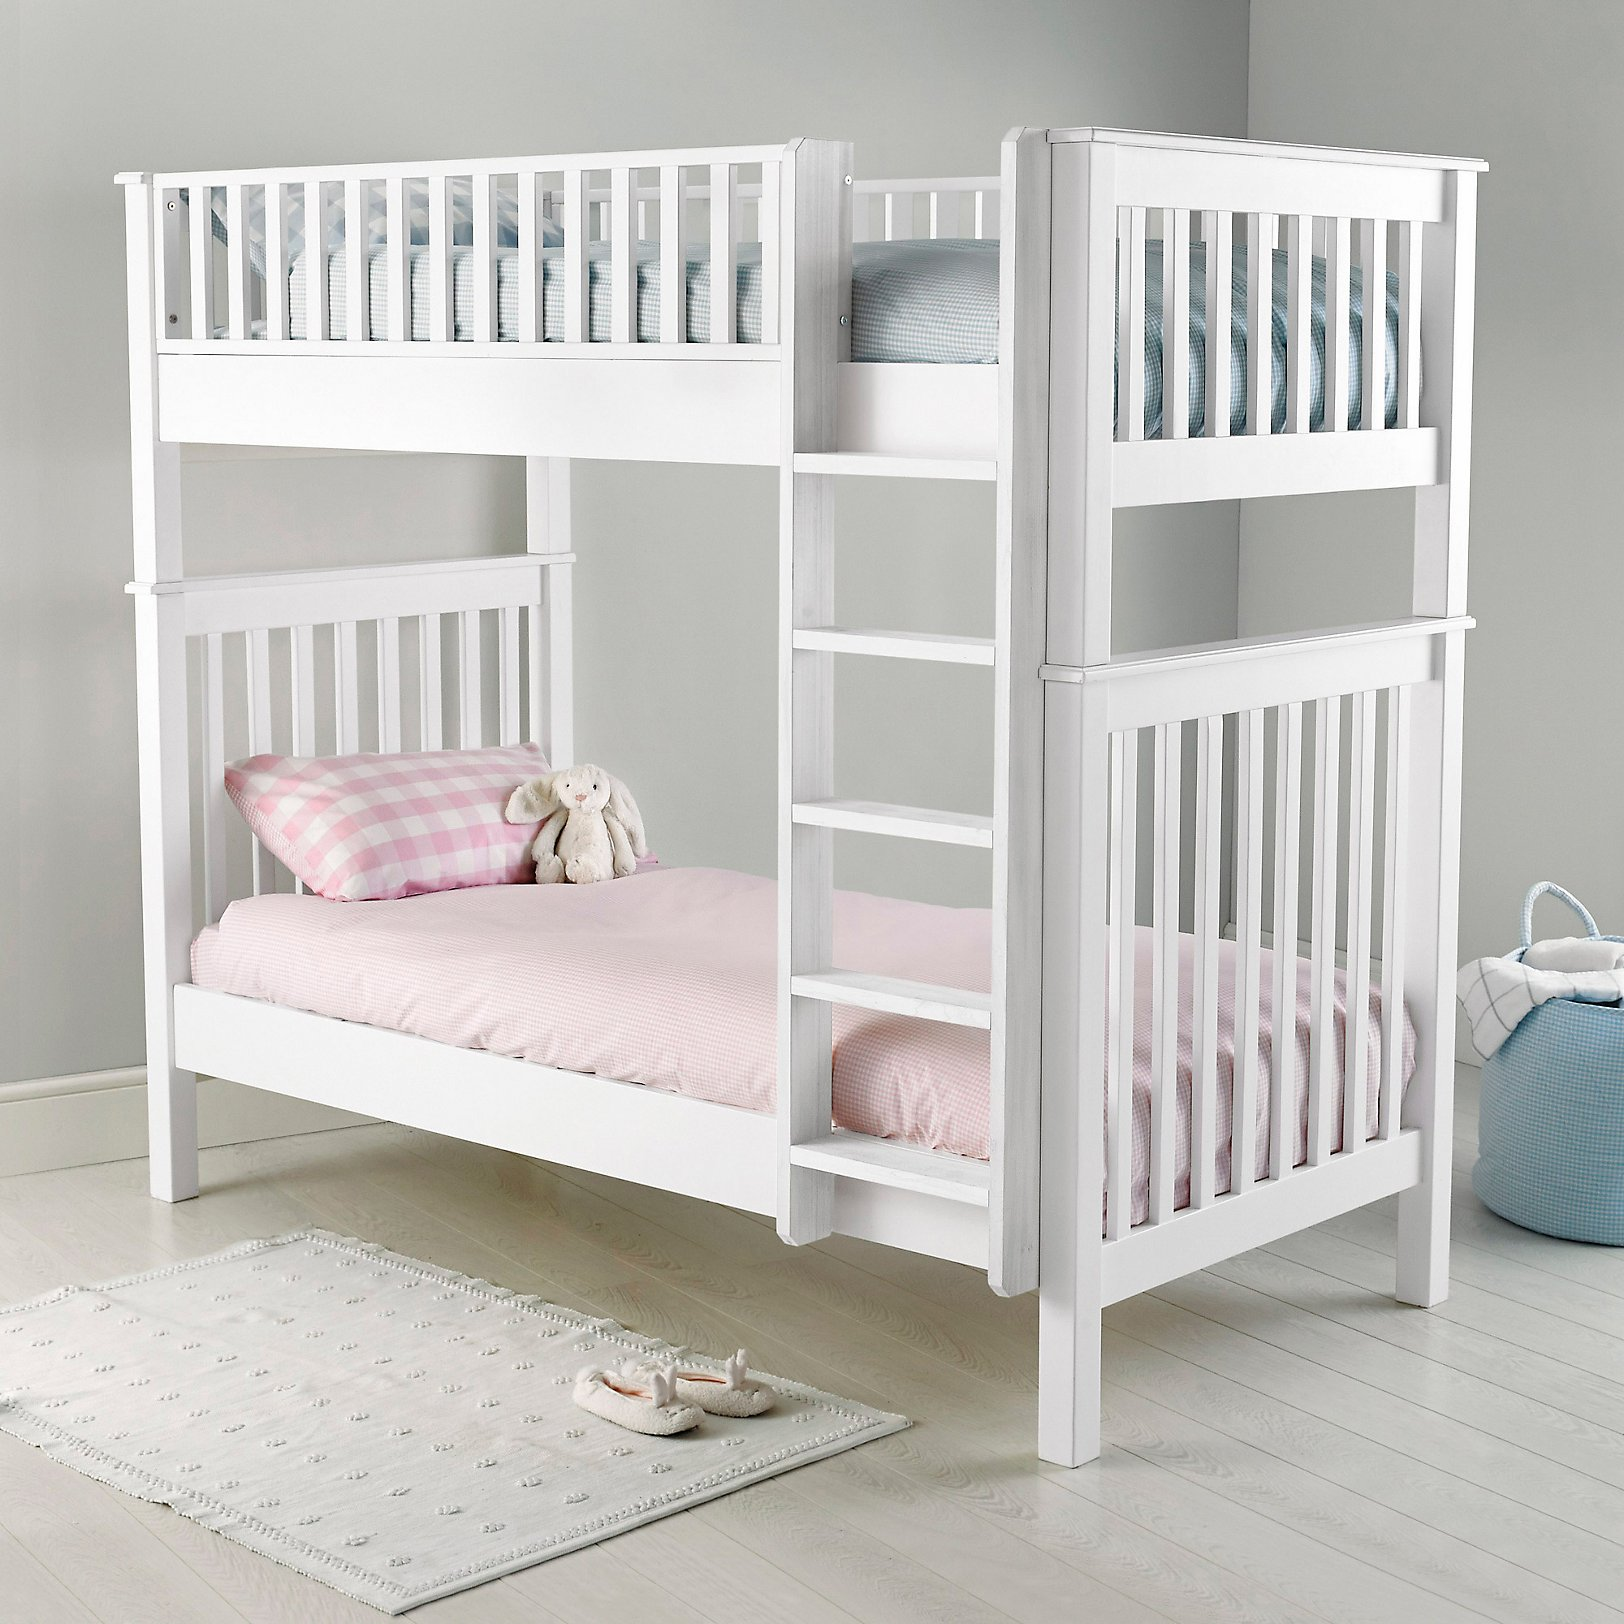 Baby bed dubizzle - Classic Convertible Bunk Bed